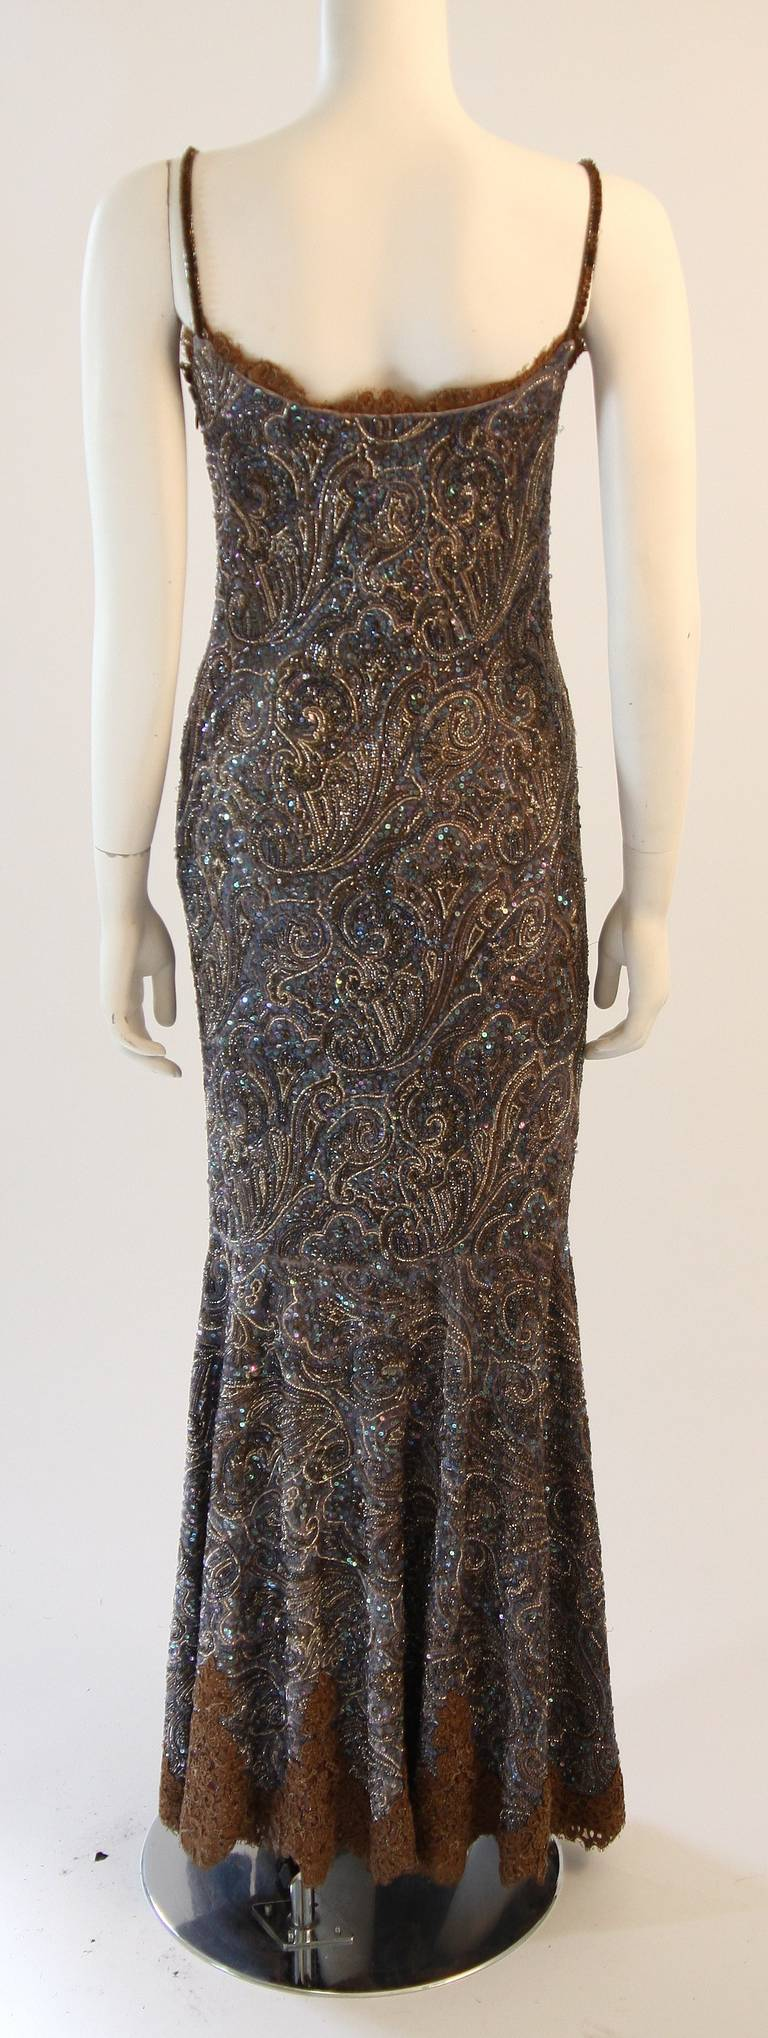 RANDI RAHM COUTURE Purple Sequin Hand Beaded Velvet Paisley Gown Size 4-6 9